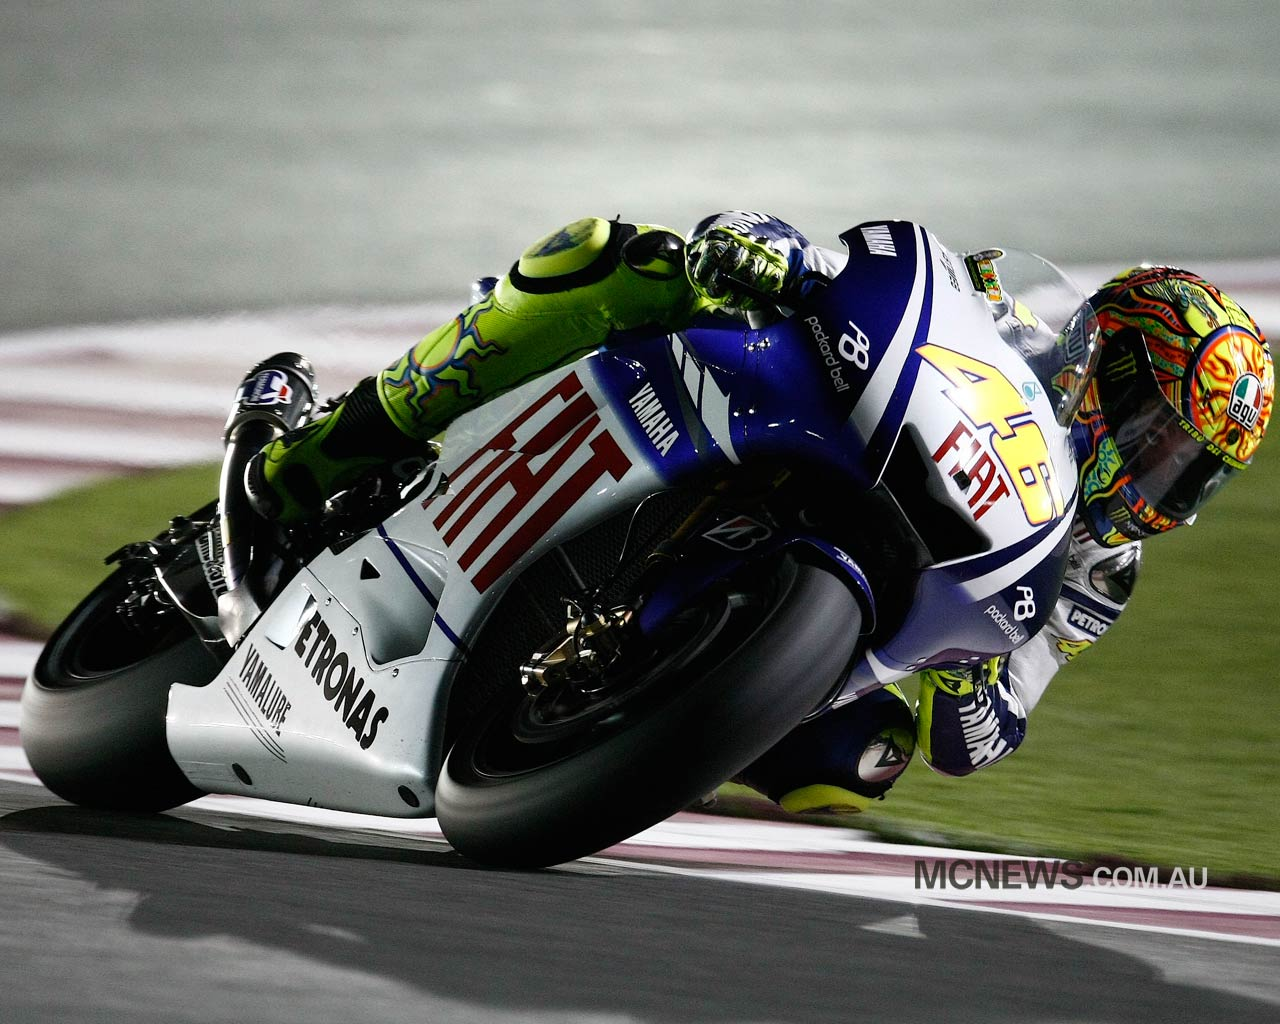 Valentino Rossi HD Wallpaper   HD Wallpaper HD Wallpaper 1280x1024